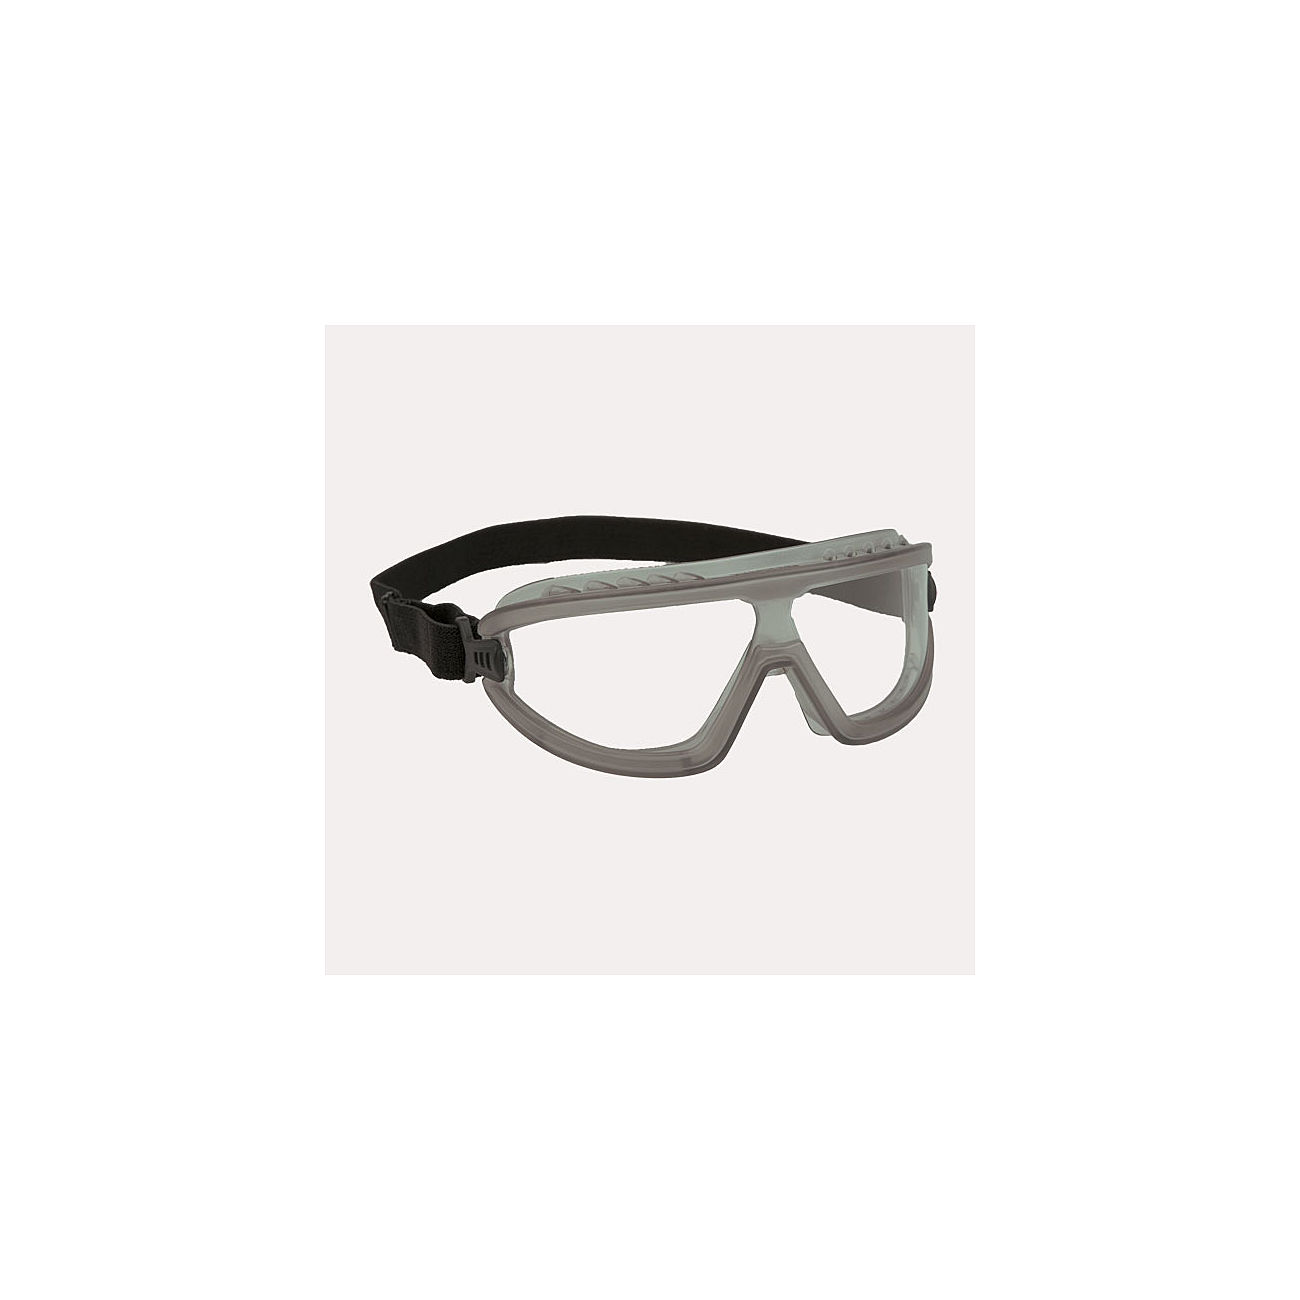 Infield Safety Brille Aviator Outdoor smoke 0